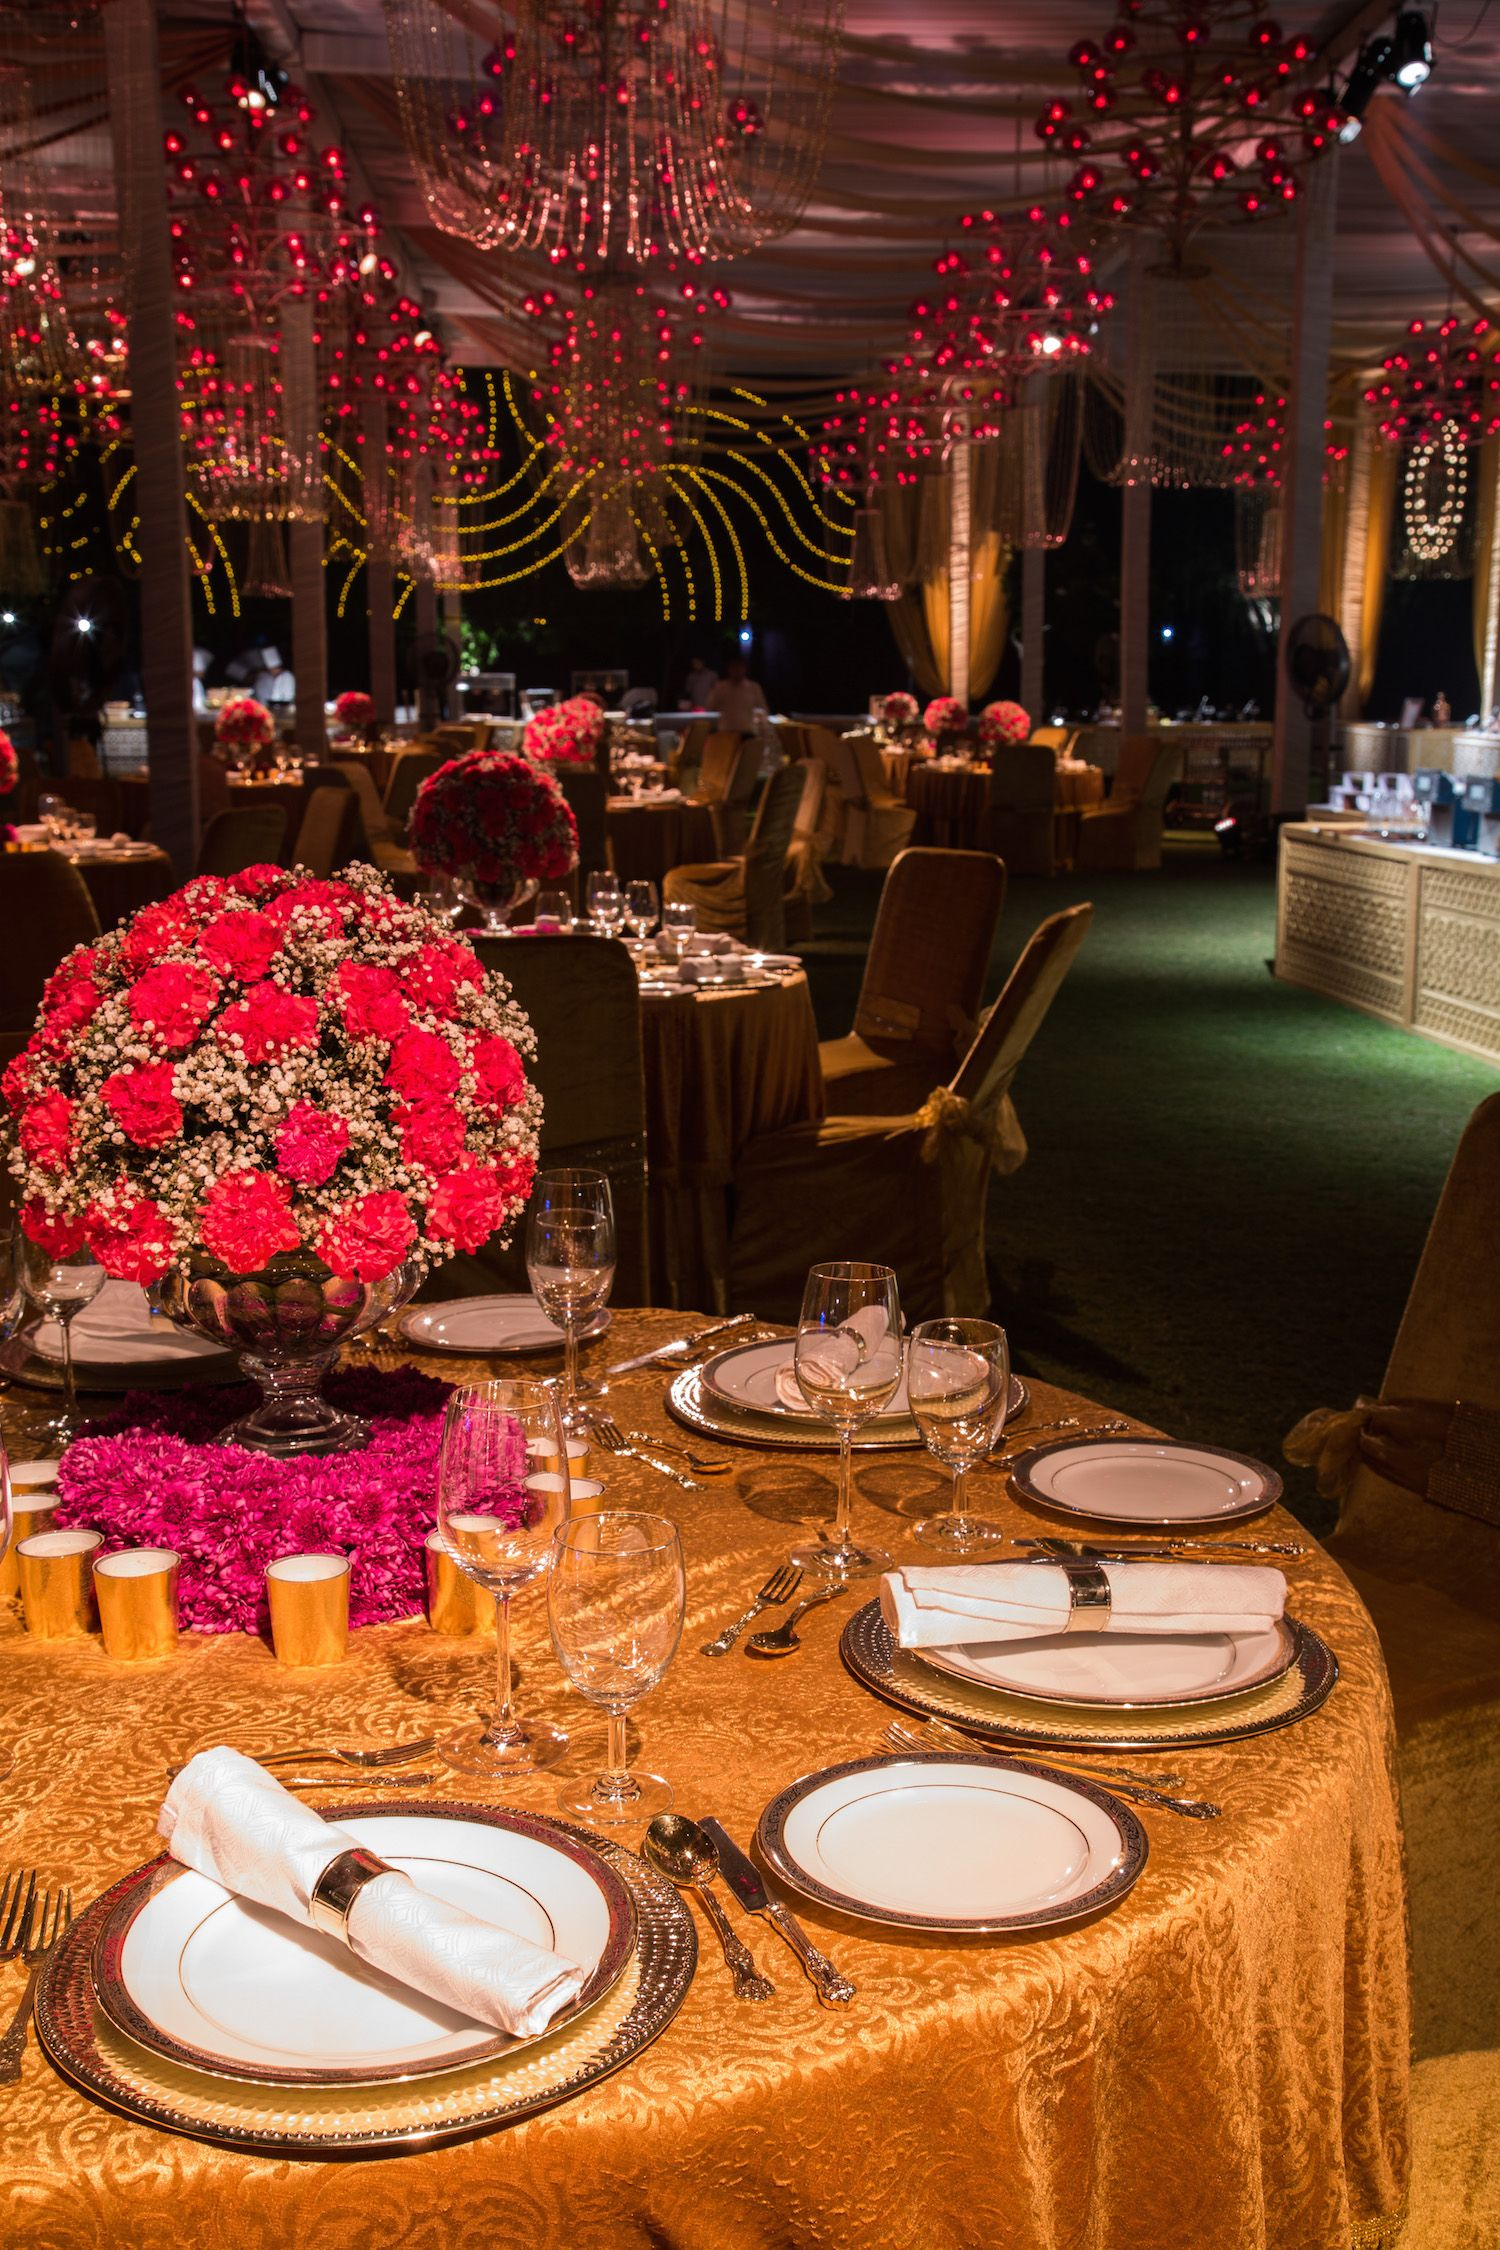 The best #food experience starts with a stunning table :) #StaySelectED #finedining #events #India #foodie #decor